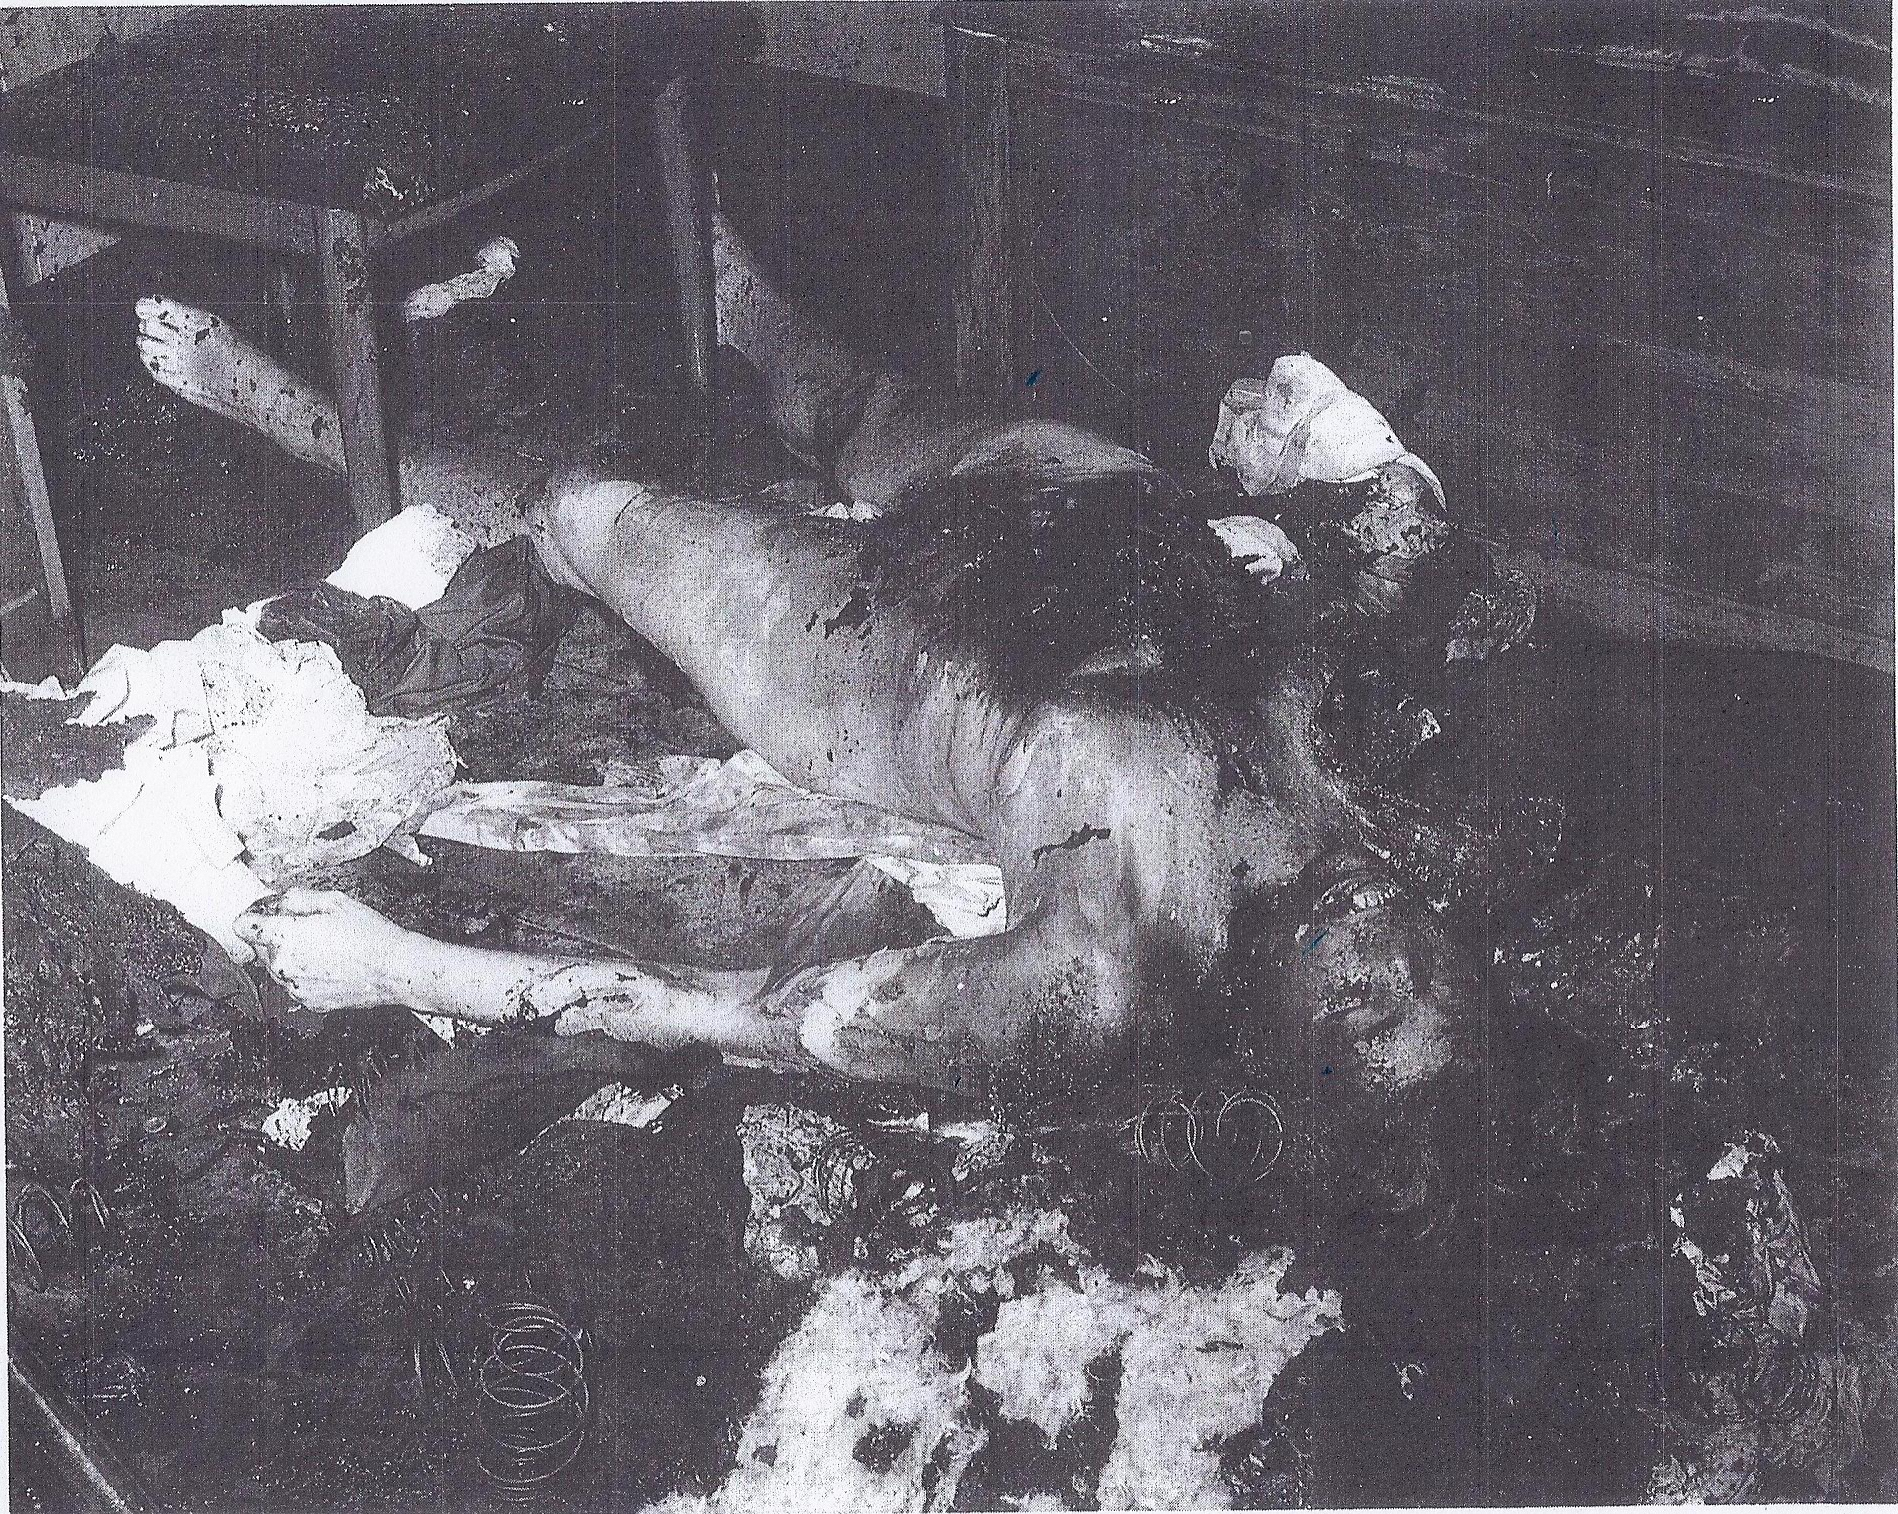 Close View Of Mary S Body On The Floor Of The Bedroom